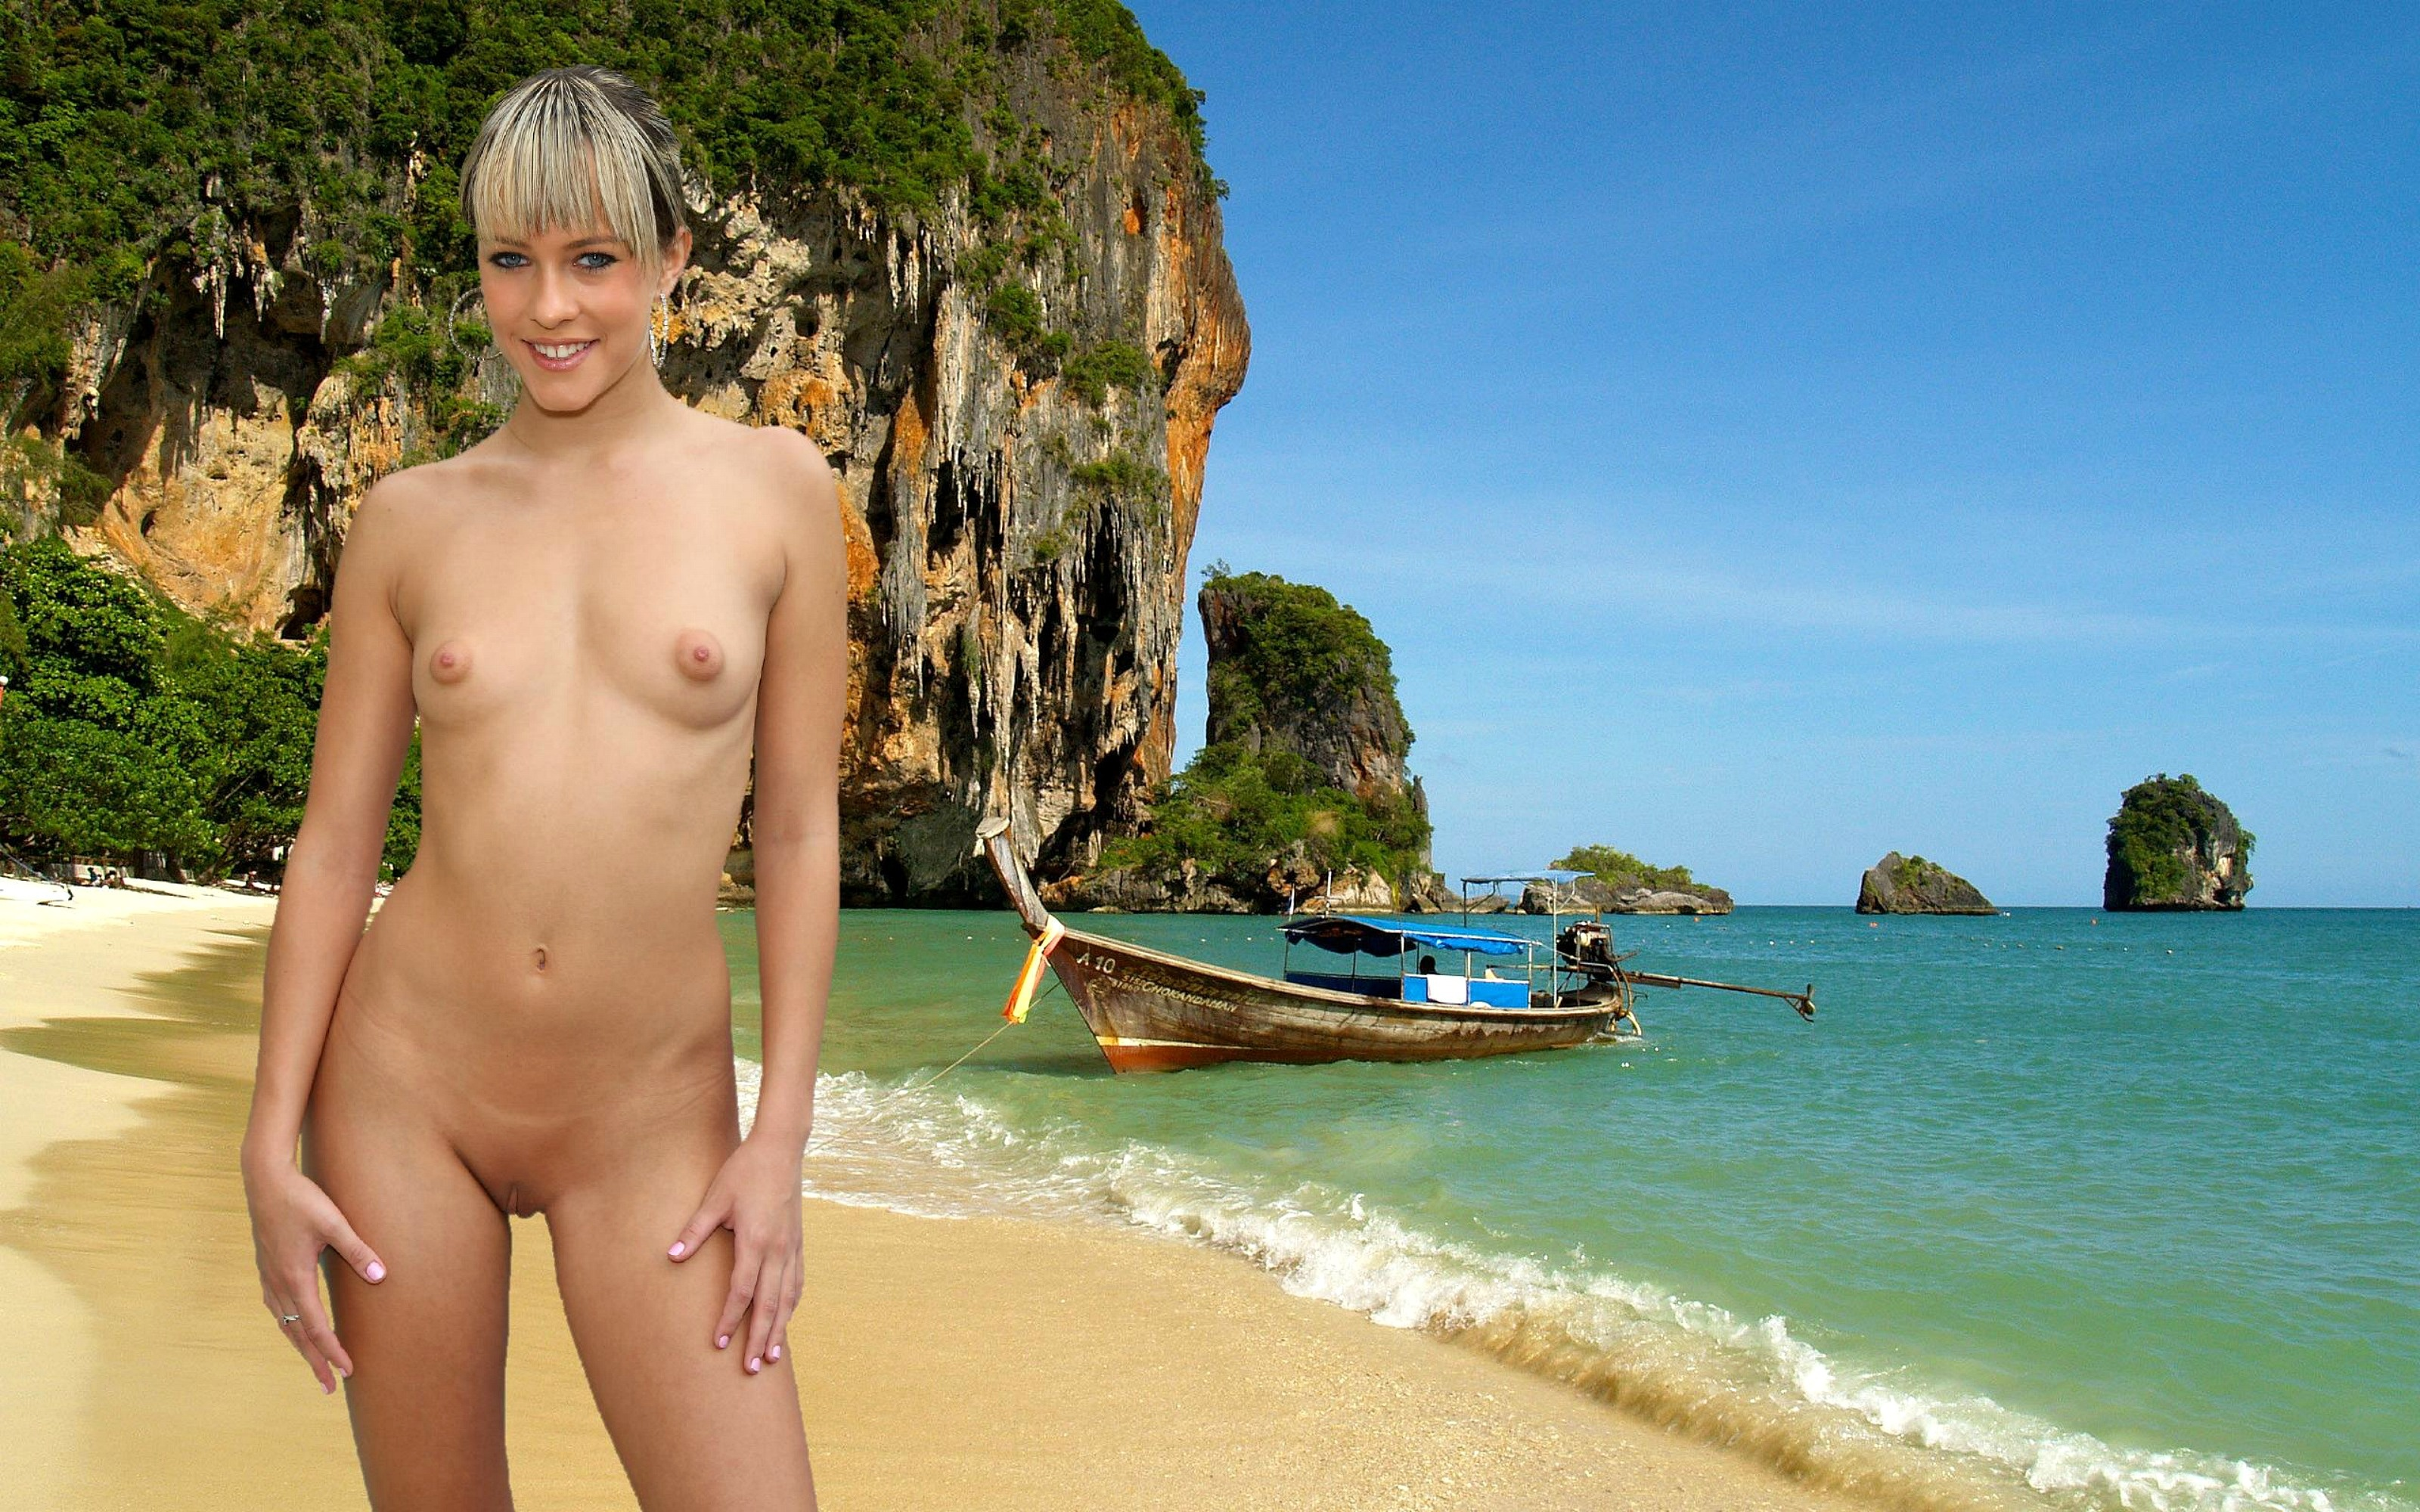 Wallpaper Leila, Blonde, Beach, Naked, Small Tits, Puffy -8891